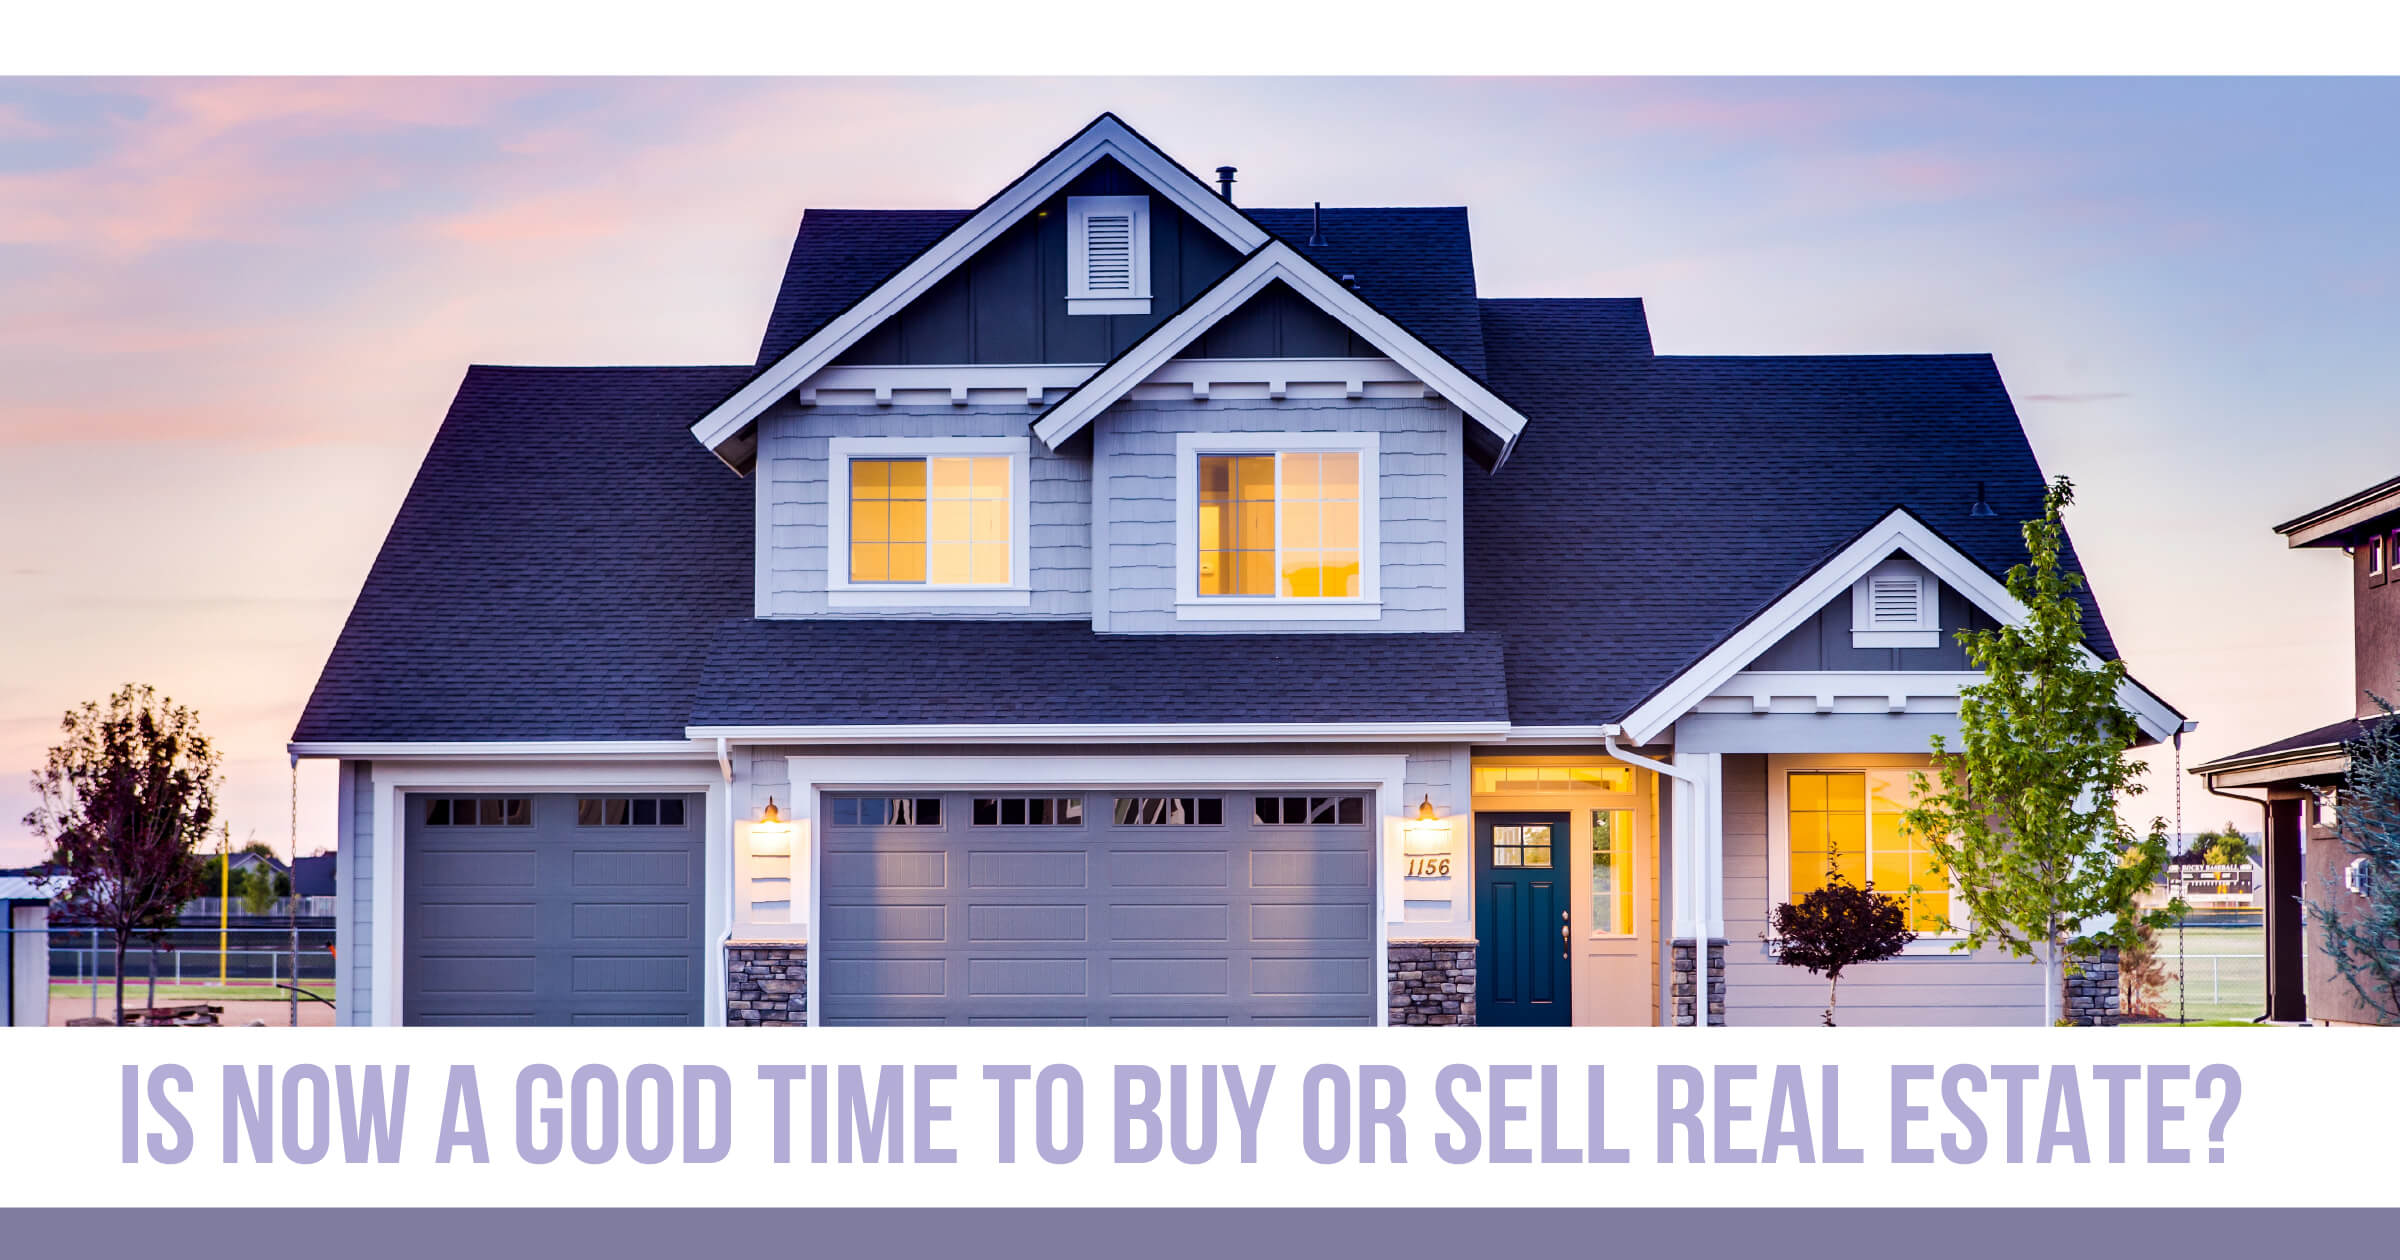 Should You Consider Buying or Selling a Home Right Now?